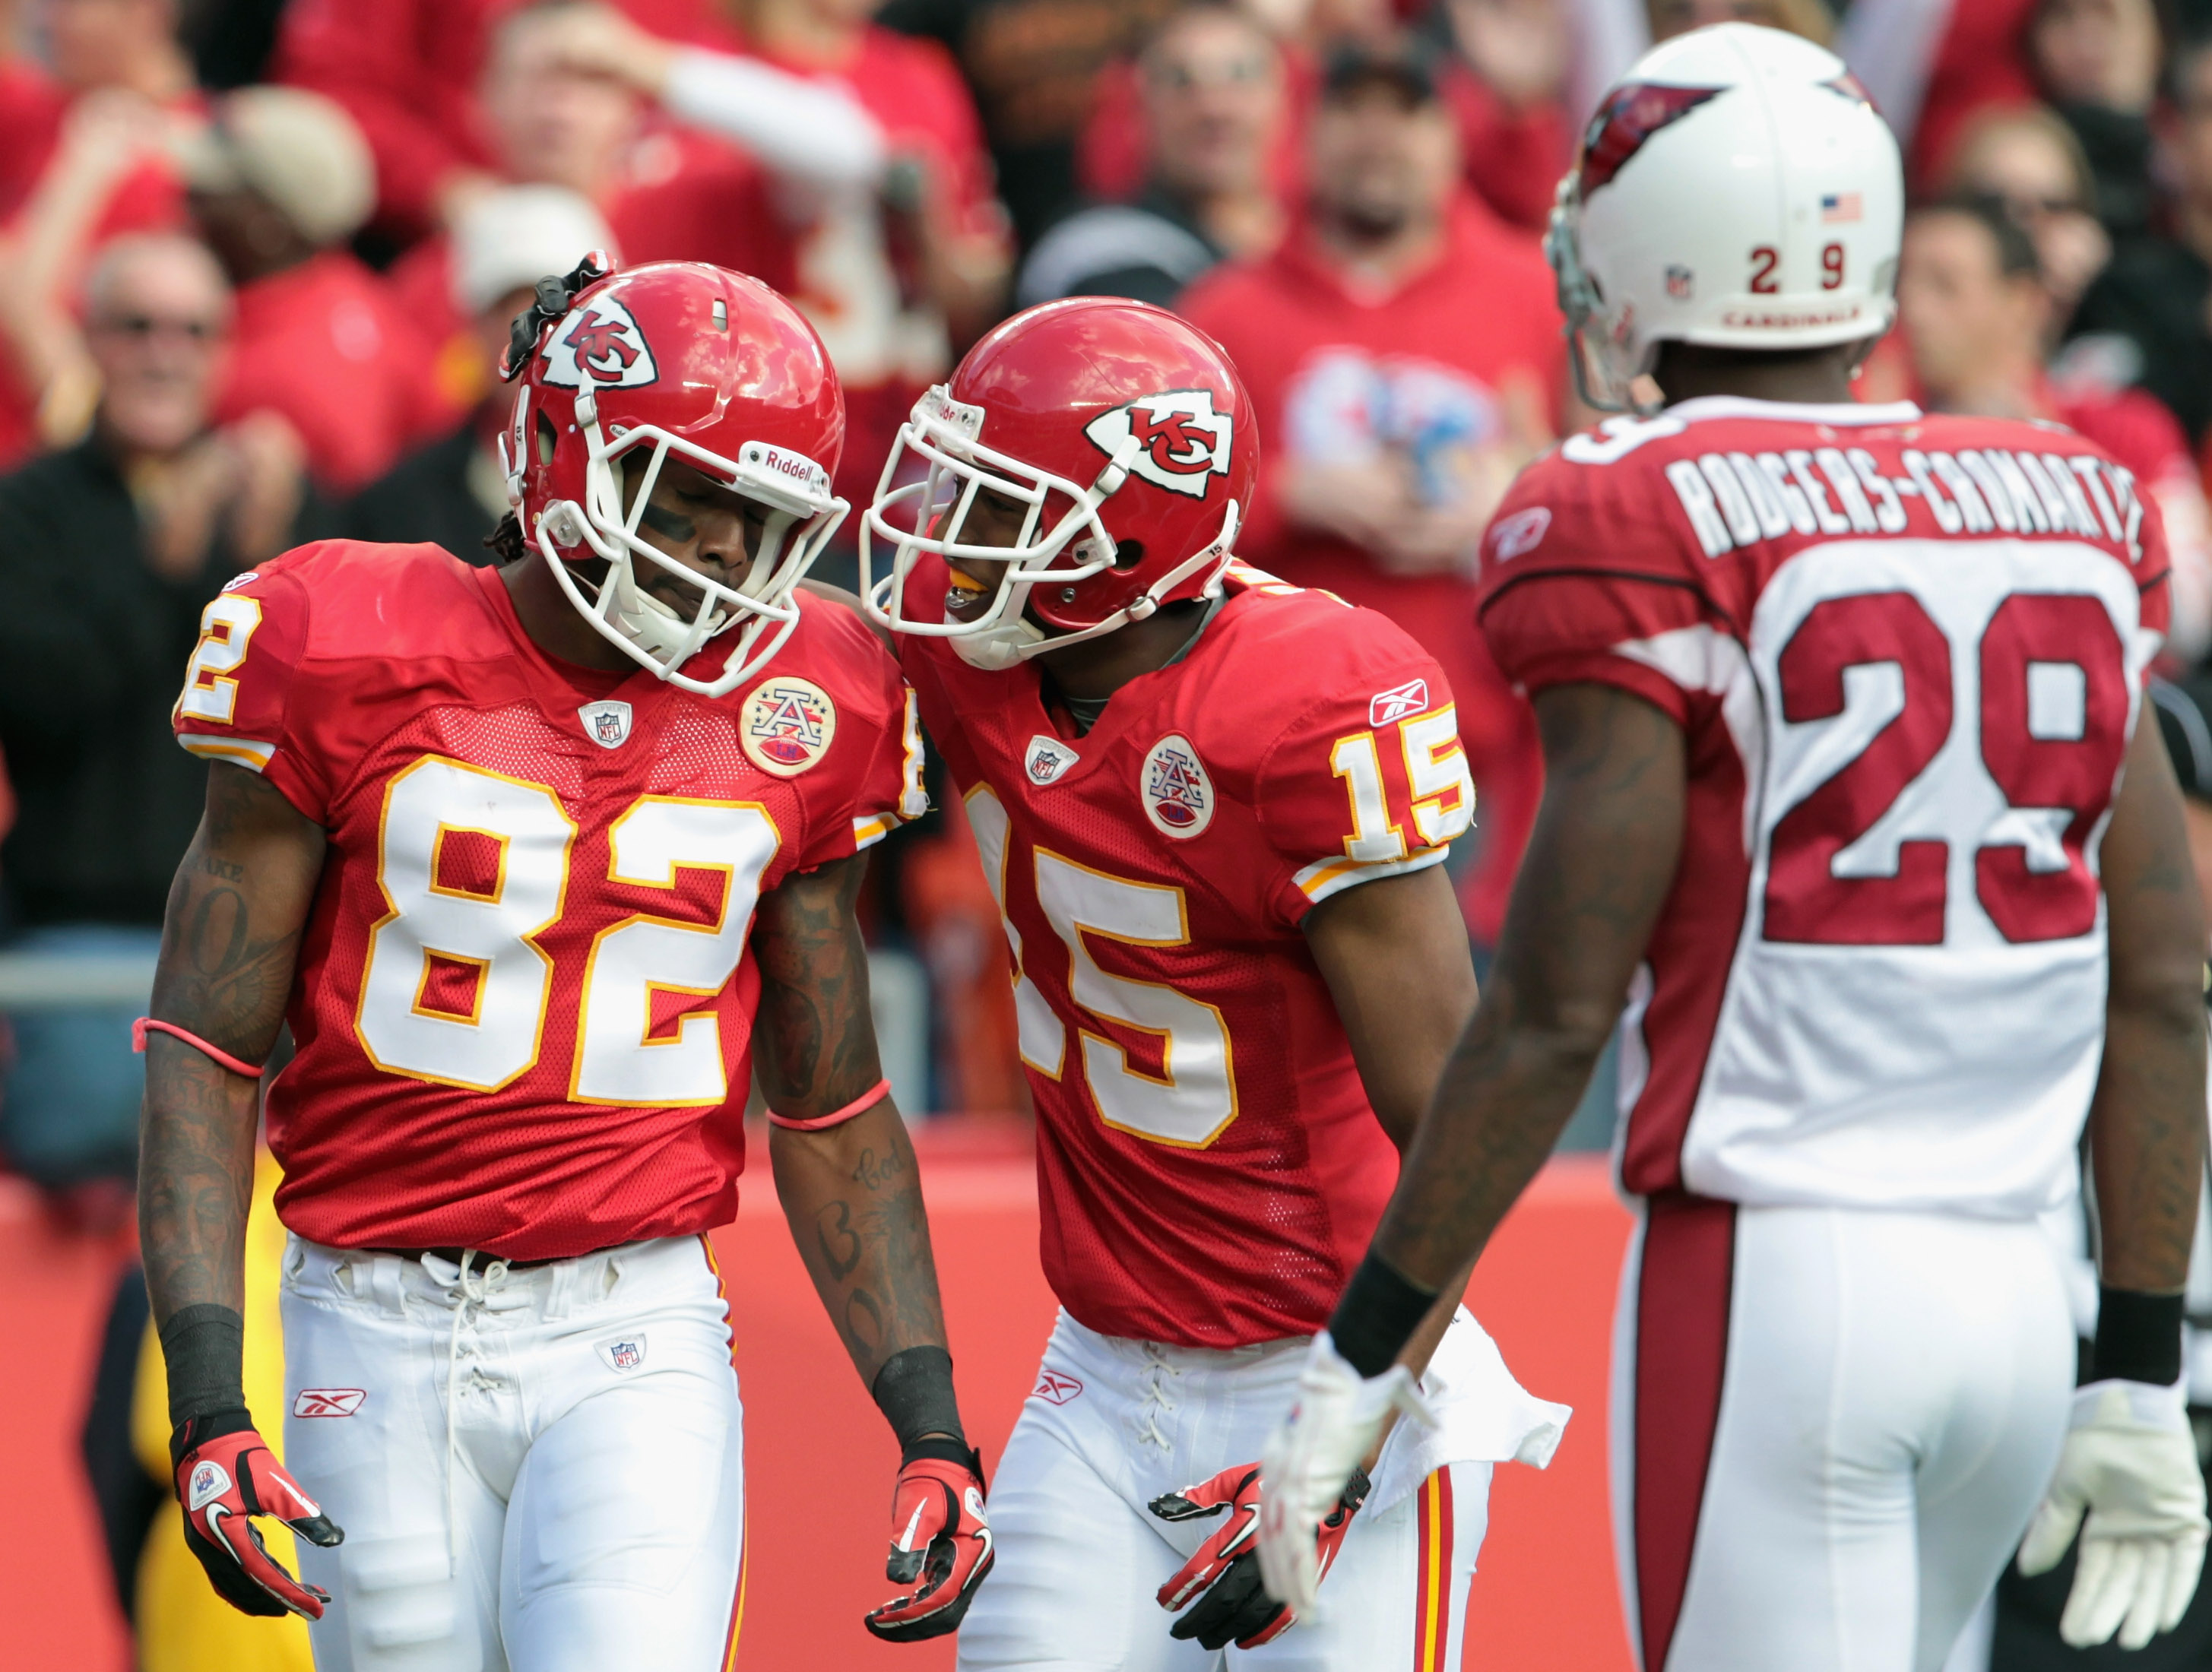 KANSAS CITY, MO - NOVEMBER 21:  Verran Tucker #15 of the Kansas City Chiefs congratulates Dwayne Bowe #82 after a touchdown during the game against the Arizona Cardinals at Arrowhead Stadium on November 21, 2010 in Kansas City, Missouri.  (Photo by Jamie